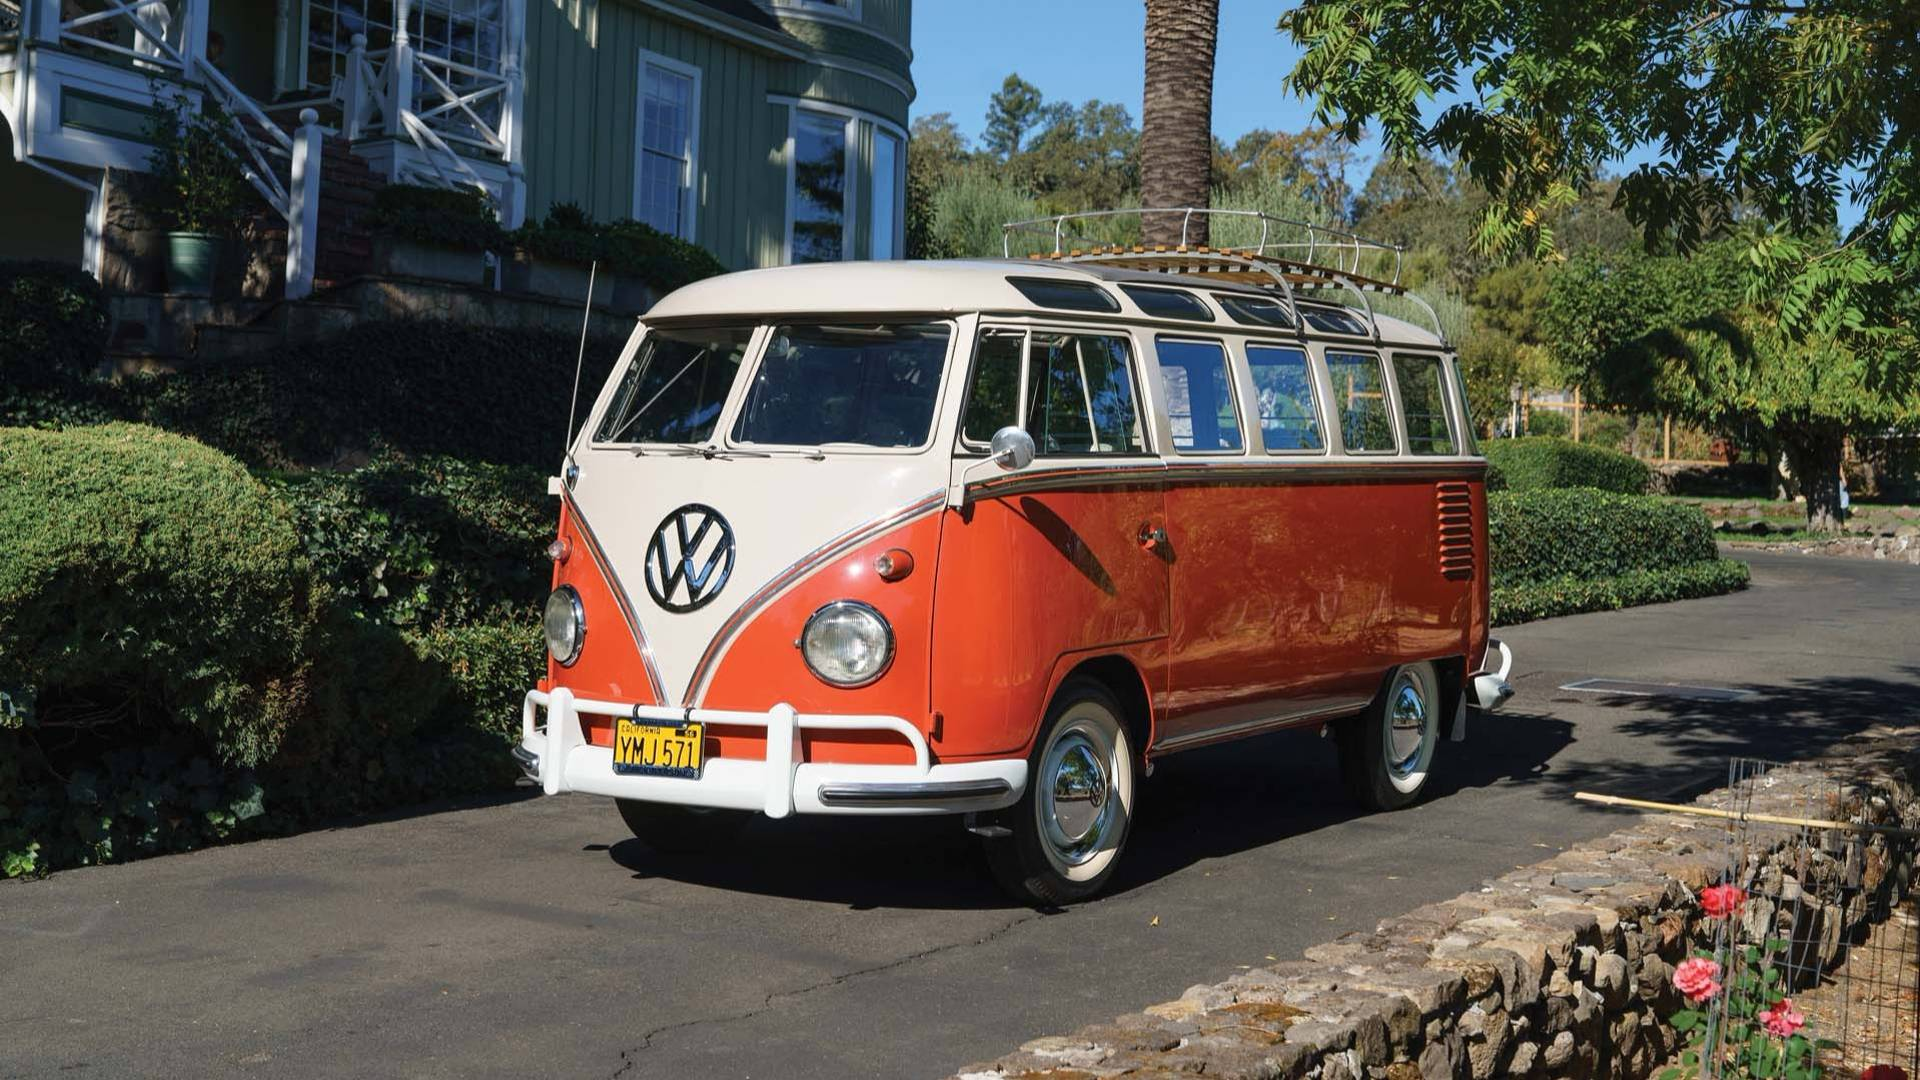 When Did Vintage Vw Microbuses Get So Freaking Expensive